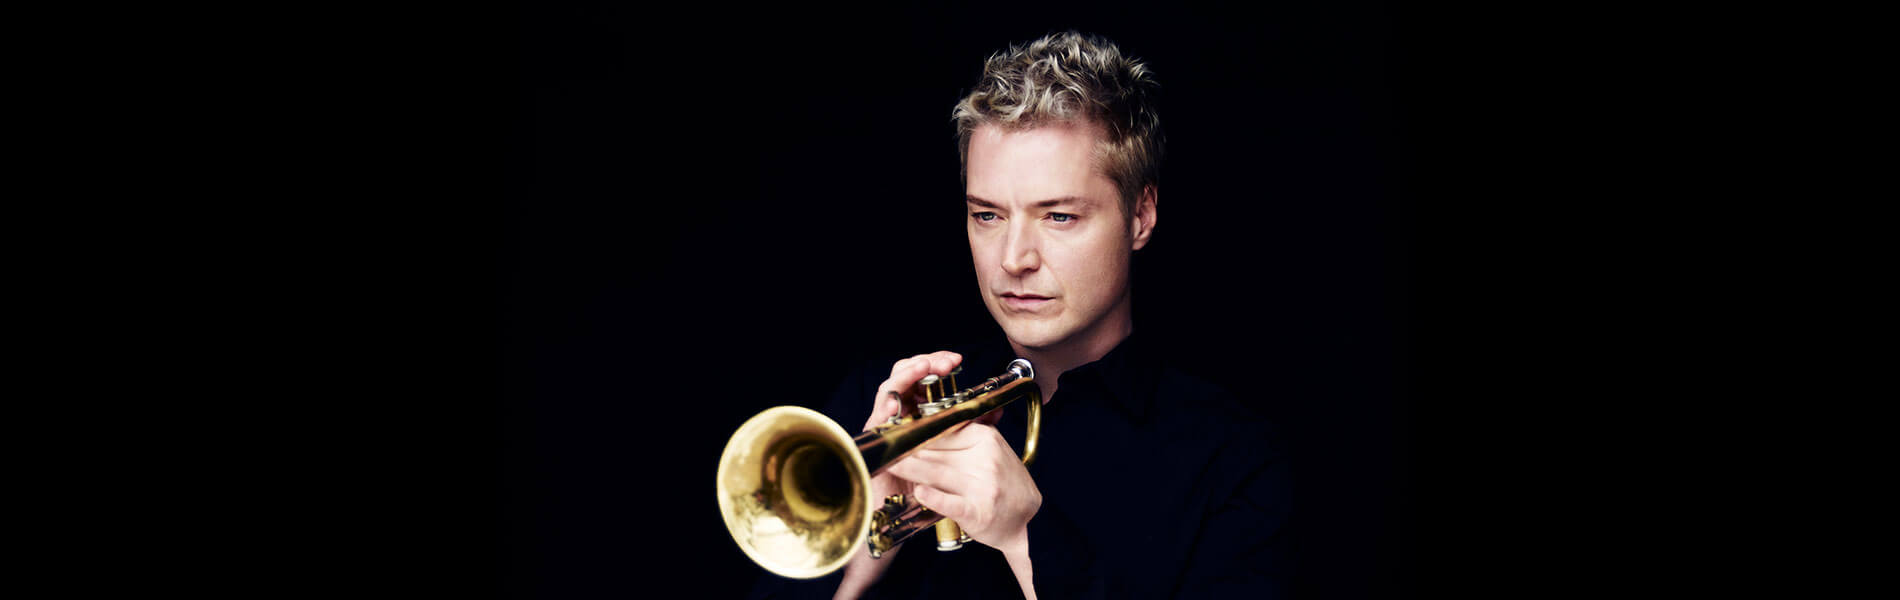 Chris Botti Tour 2020 Chris Botti | Official Oregon Symphony Tickets | May 4